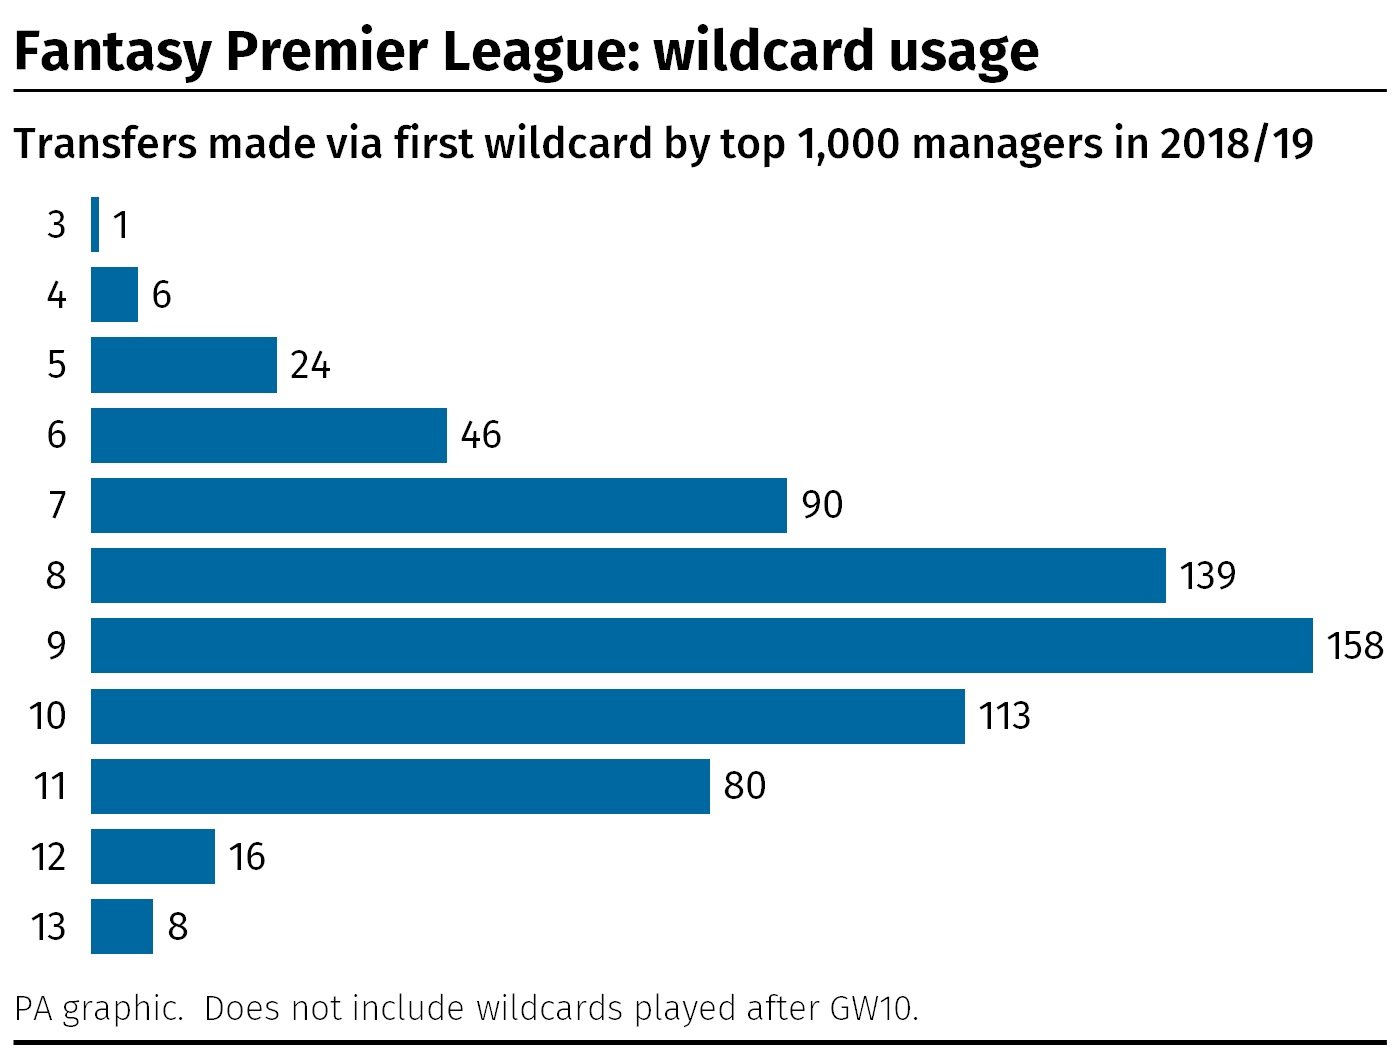 A graphic showing how many transfers the top 1000 Fantasy Premier League managers from the 2018/19 season made when they played their wildcard